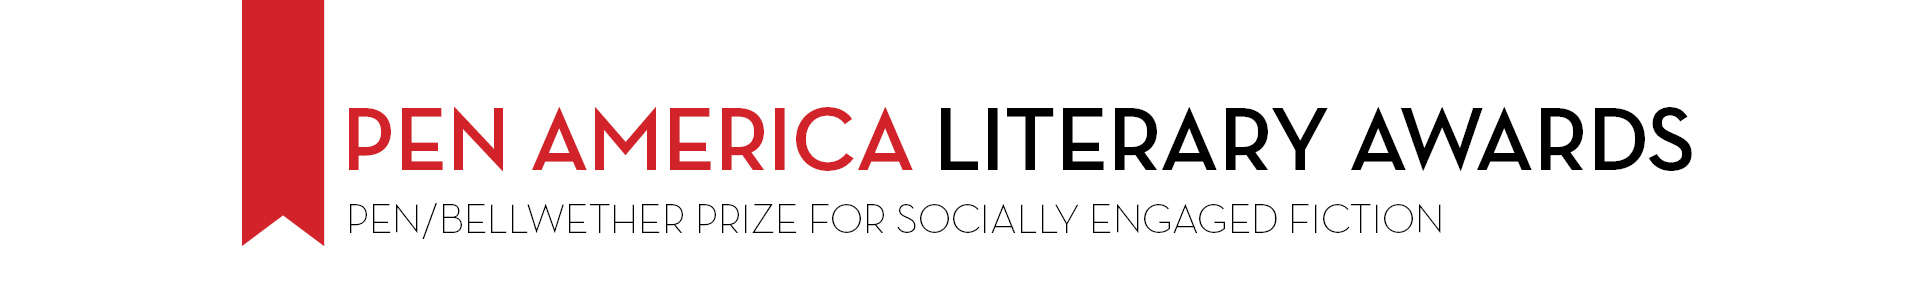 PEN America Literary Awards PEN/Bellwether Prize for Socially Engaged Fiction